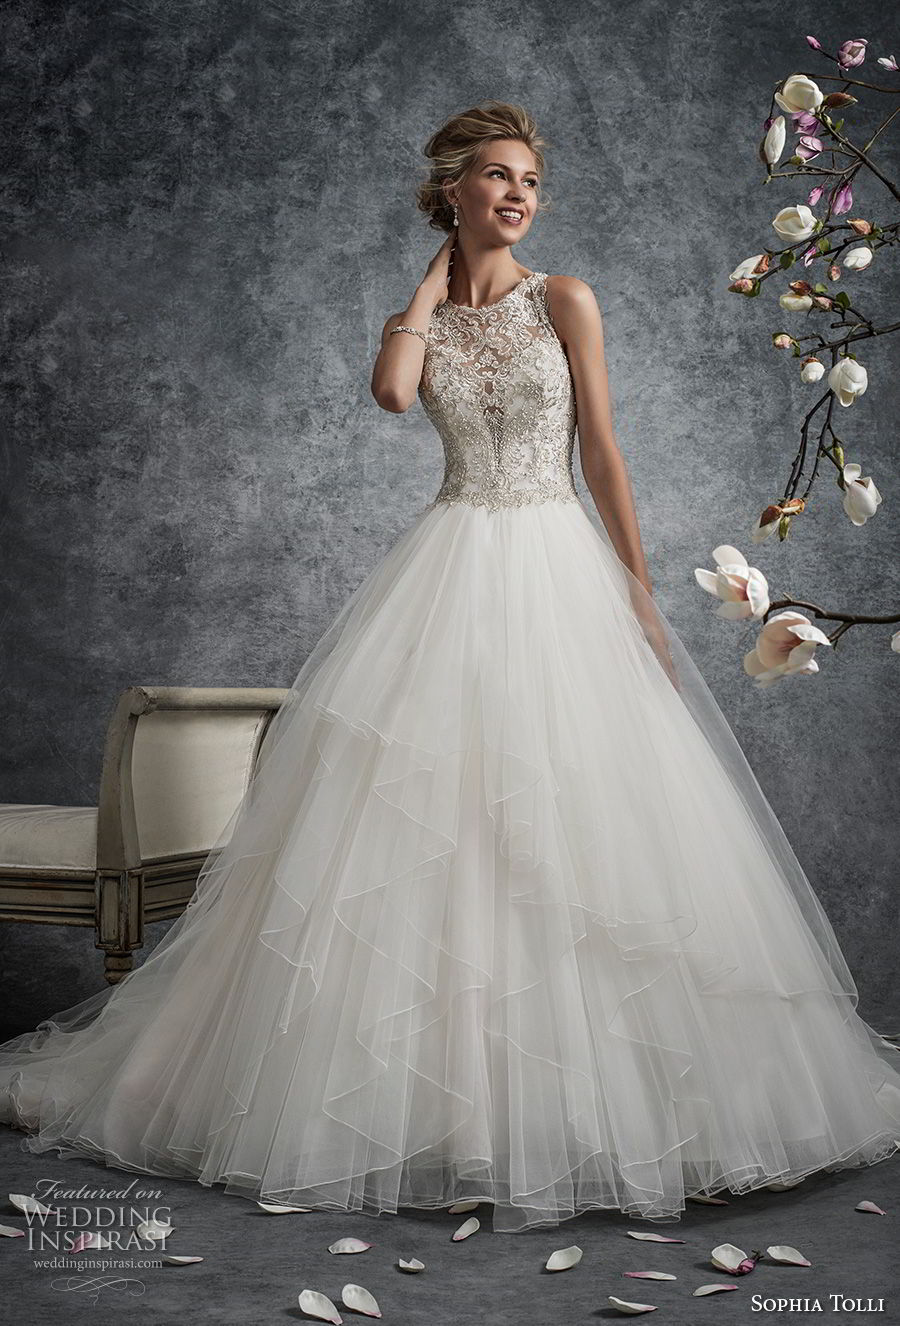 Dress Lace Soft Sweetheart Flare Neckline Line Embellished And Tulle And Fit Wedding